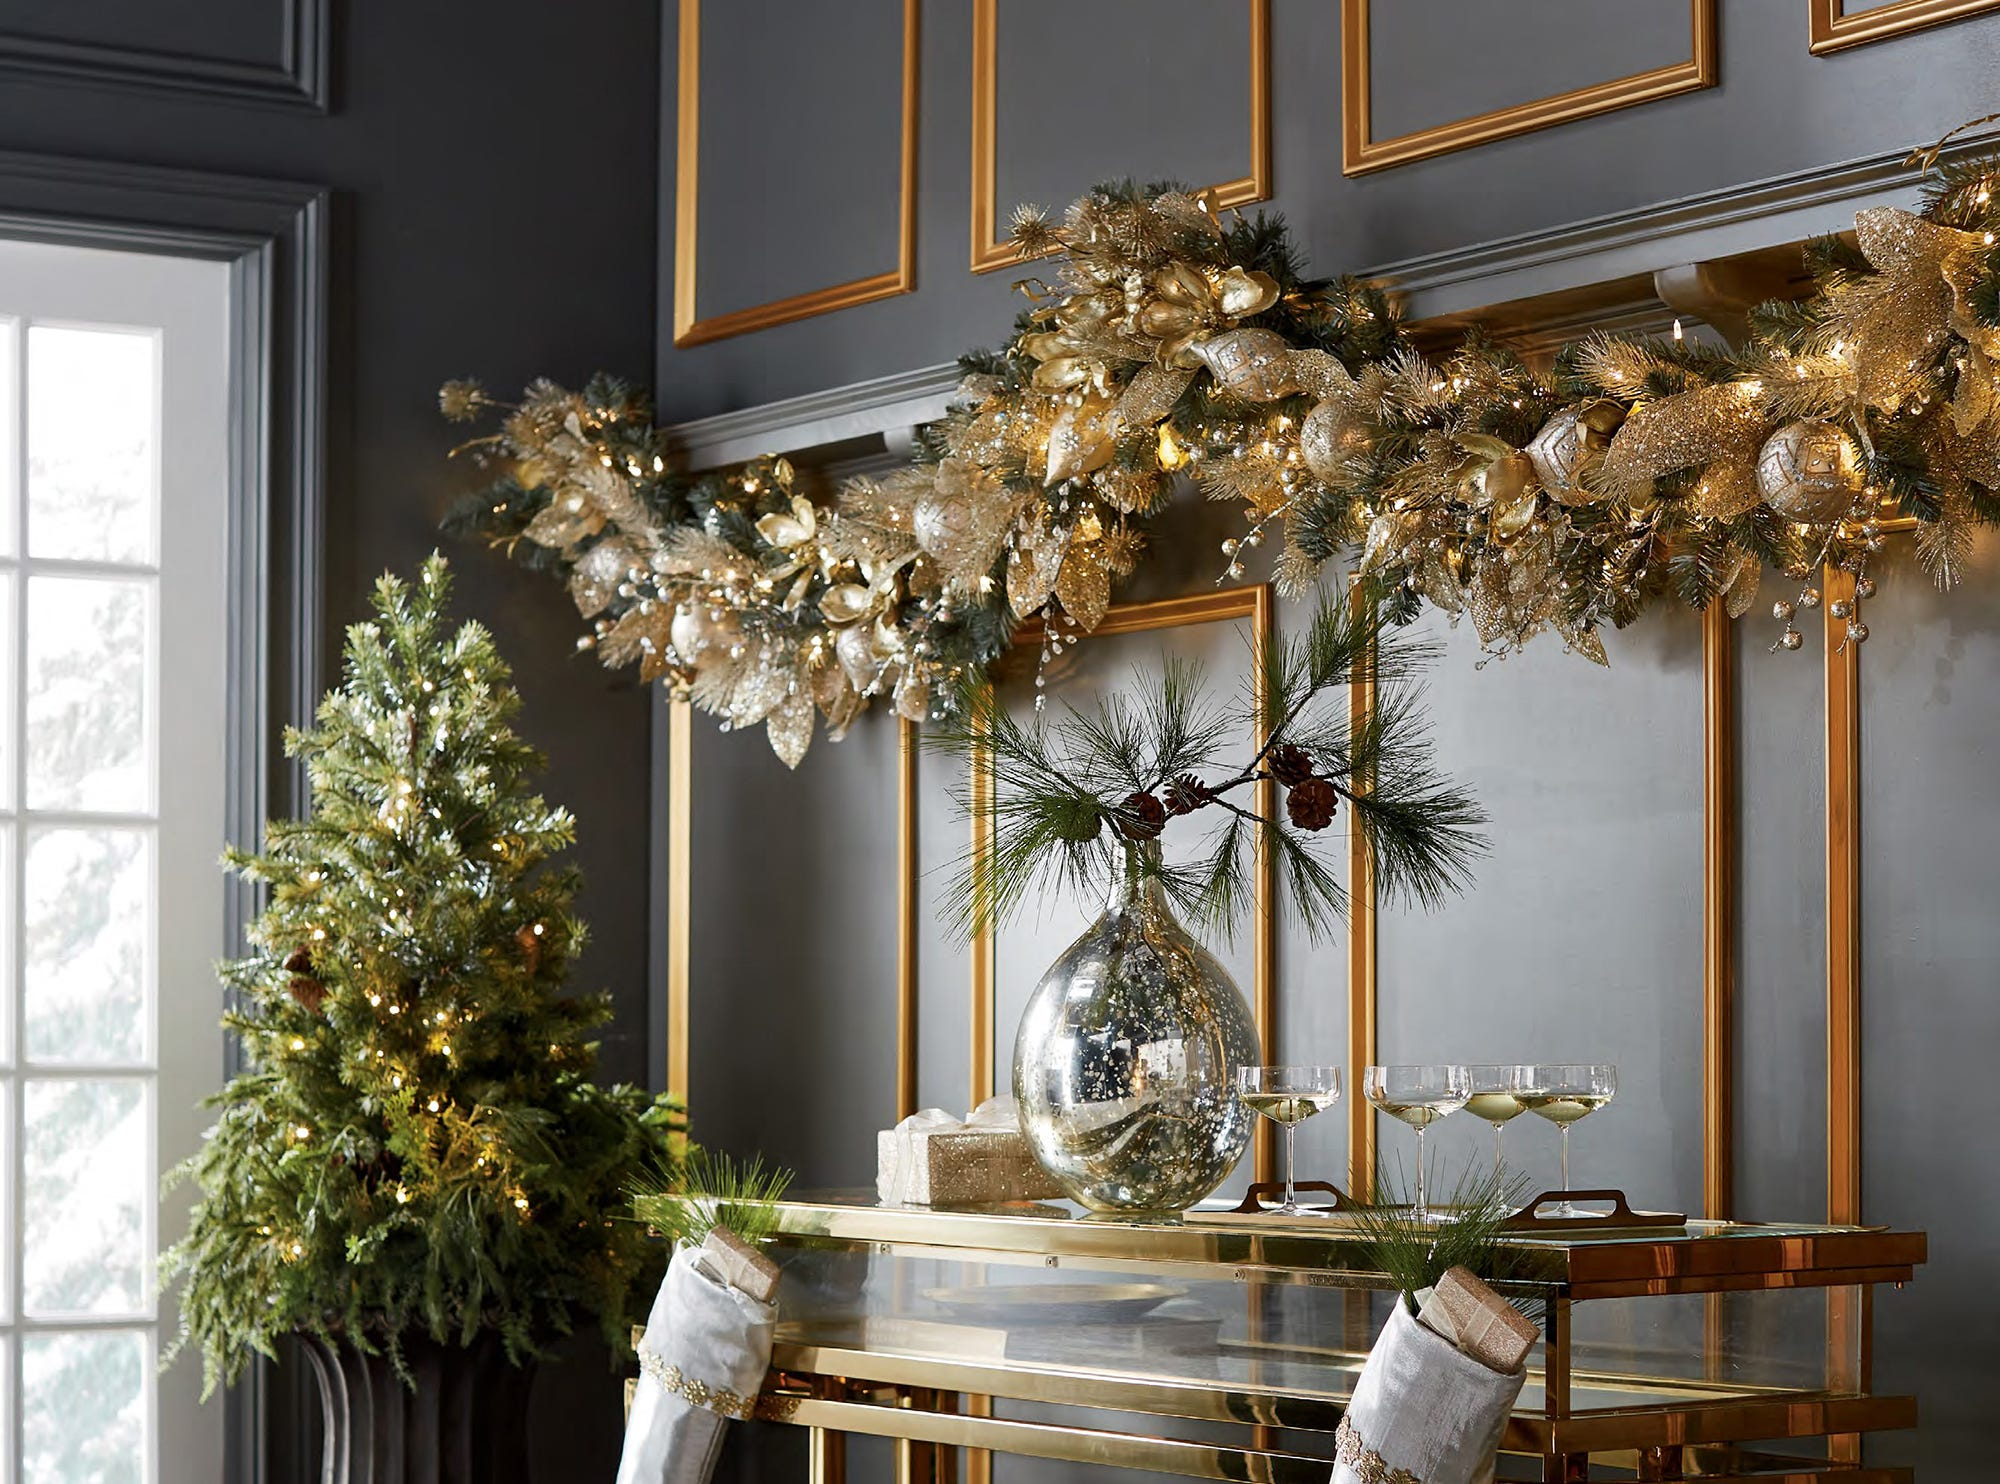 : A thick garland from Frontgate is made up of faux greens, ornaments, crystals, gold metallic ribbons and gold-edged forest green ribbons that lend opulence. The Gilded Elegance garland lavishly draws the eye above a brass console in a room punctuated with gold picture moldings.